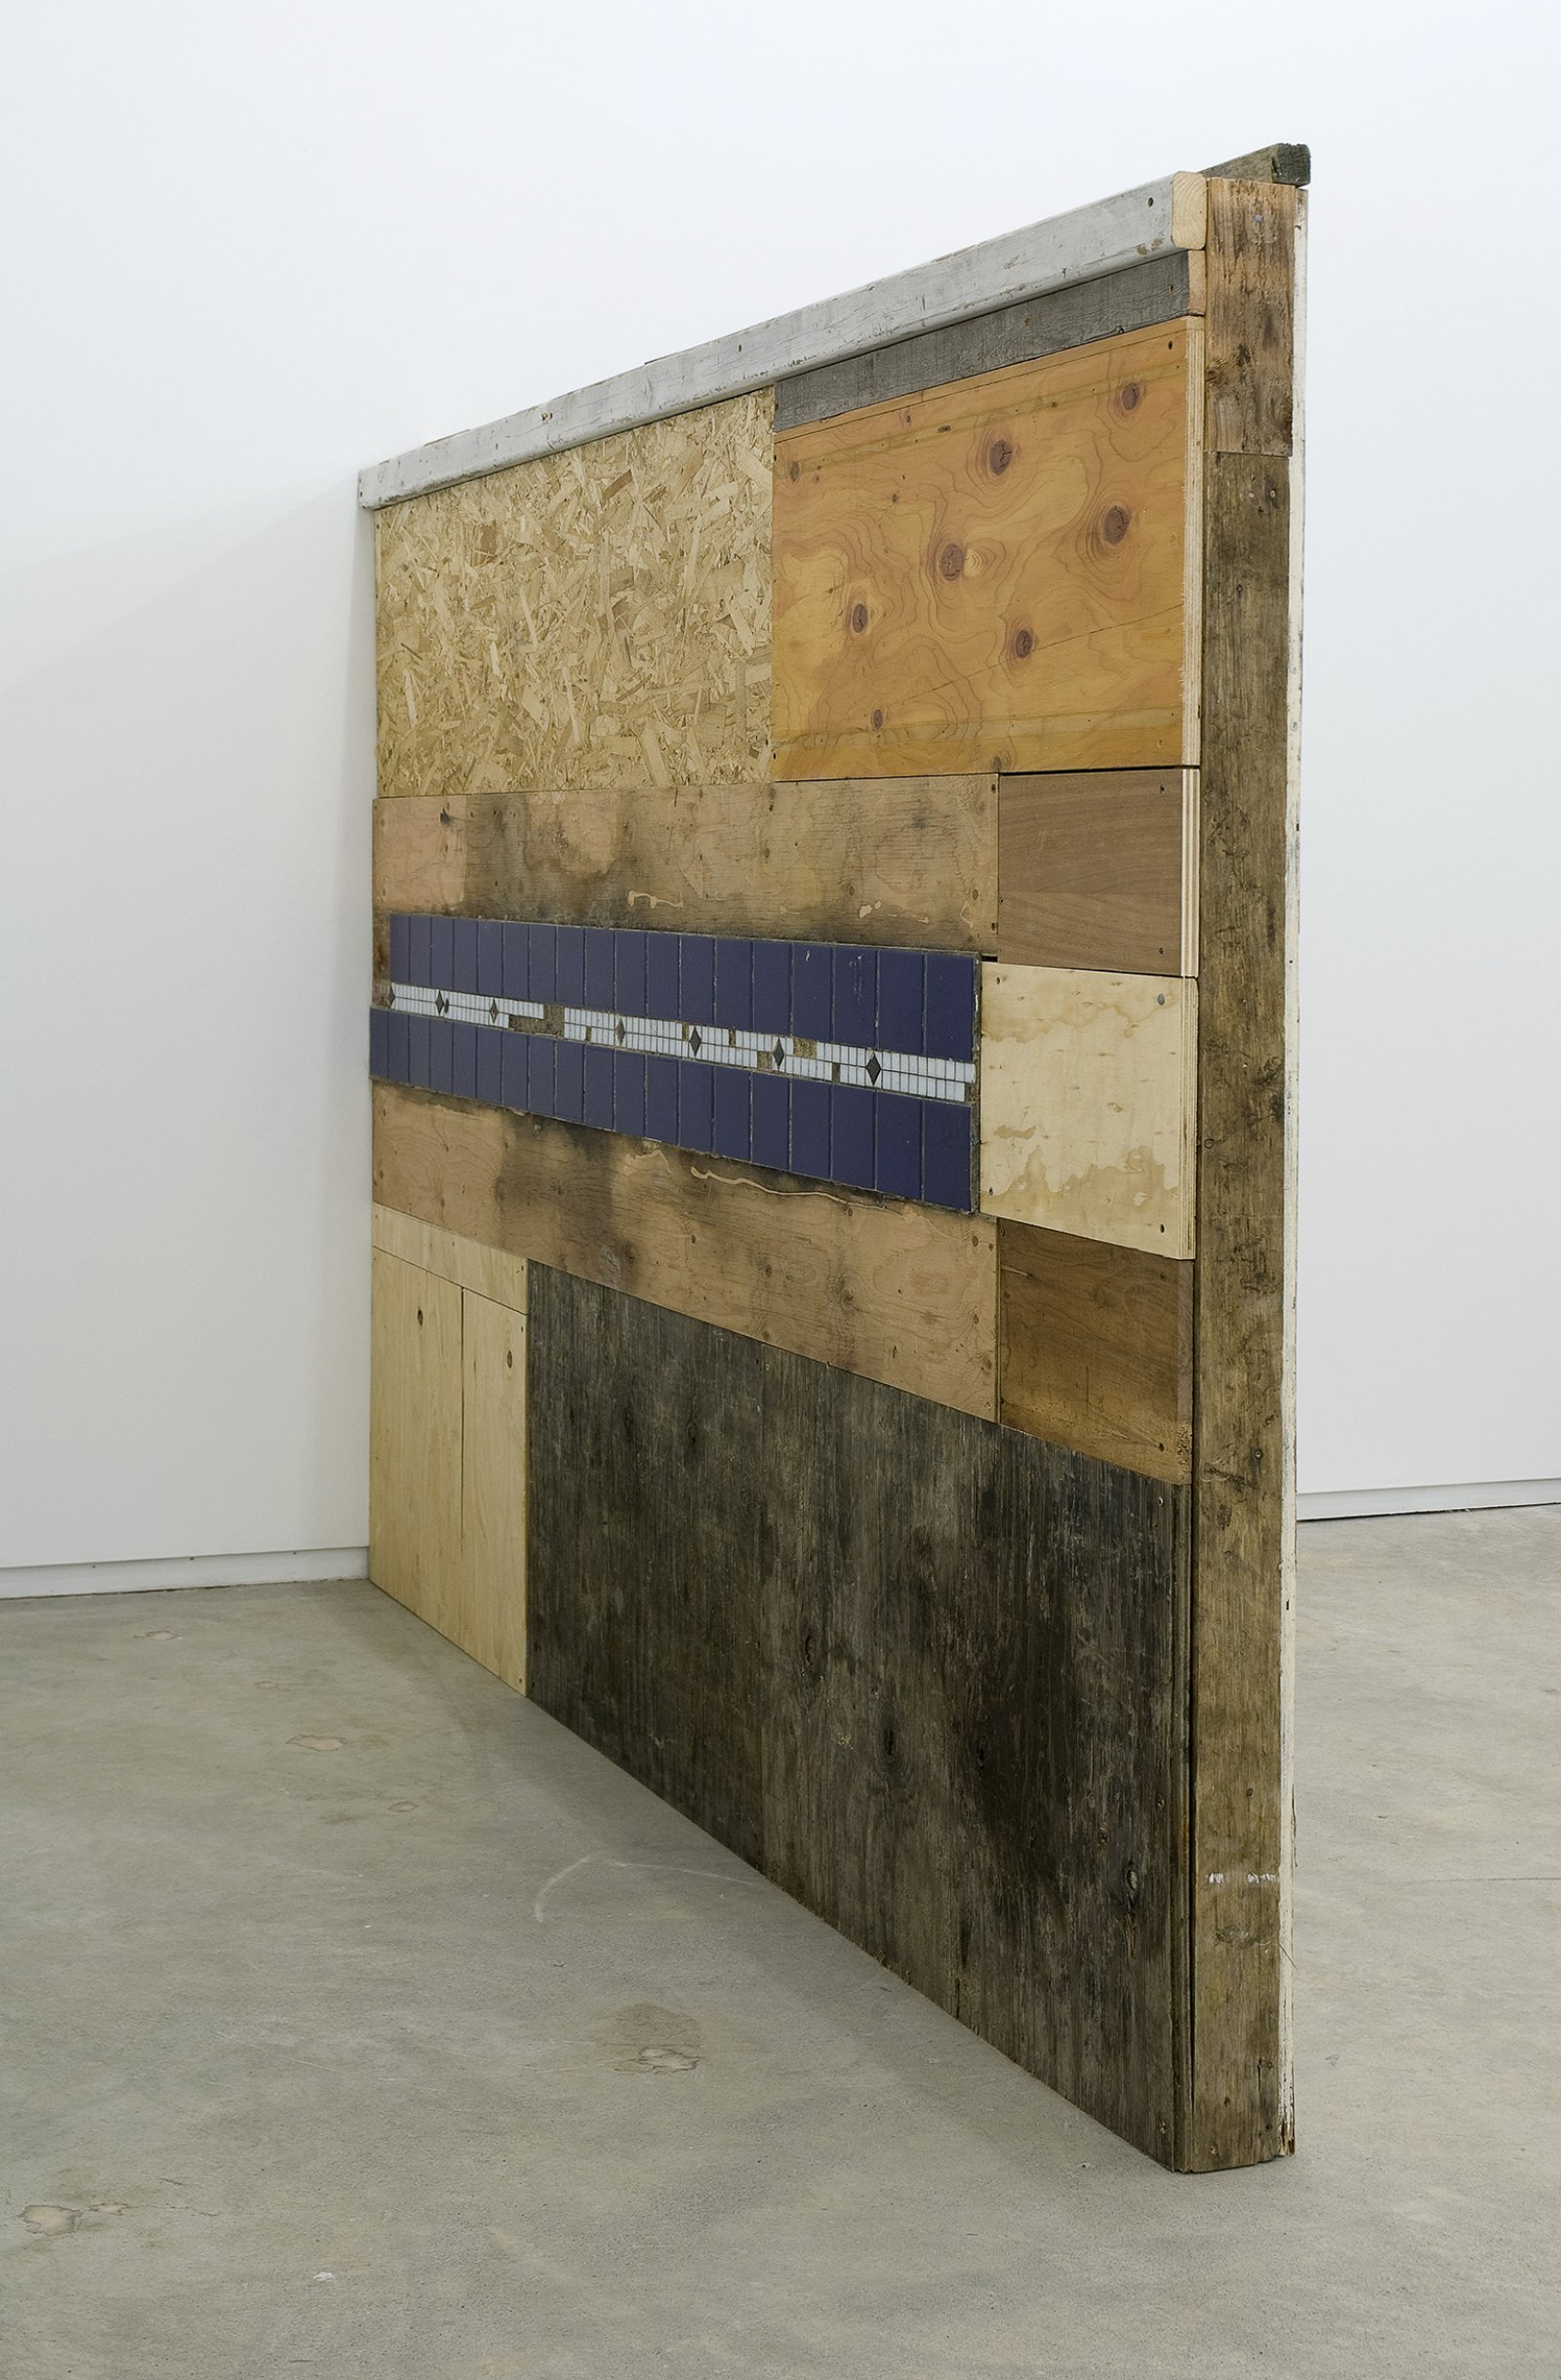 Gareth Moore, Piss Wall from Uncertain Pilgrimage, 2009, found wood, tile, 73 x 100 x 5 in. (186 x 253 x 13 cm)   by Gareth Moore